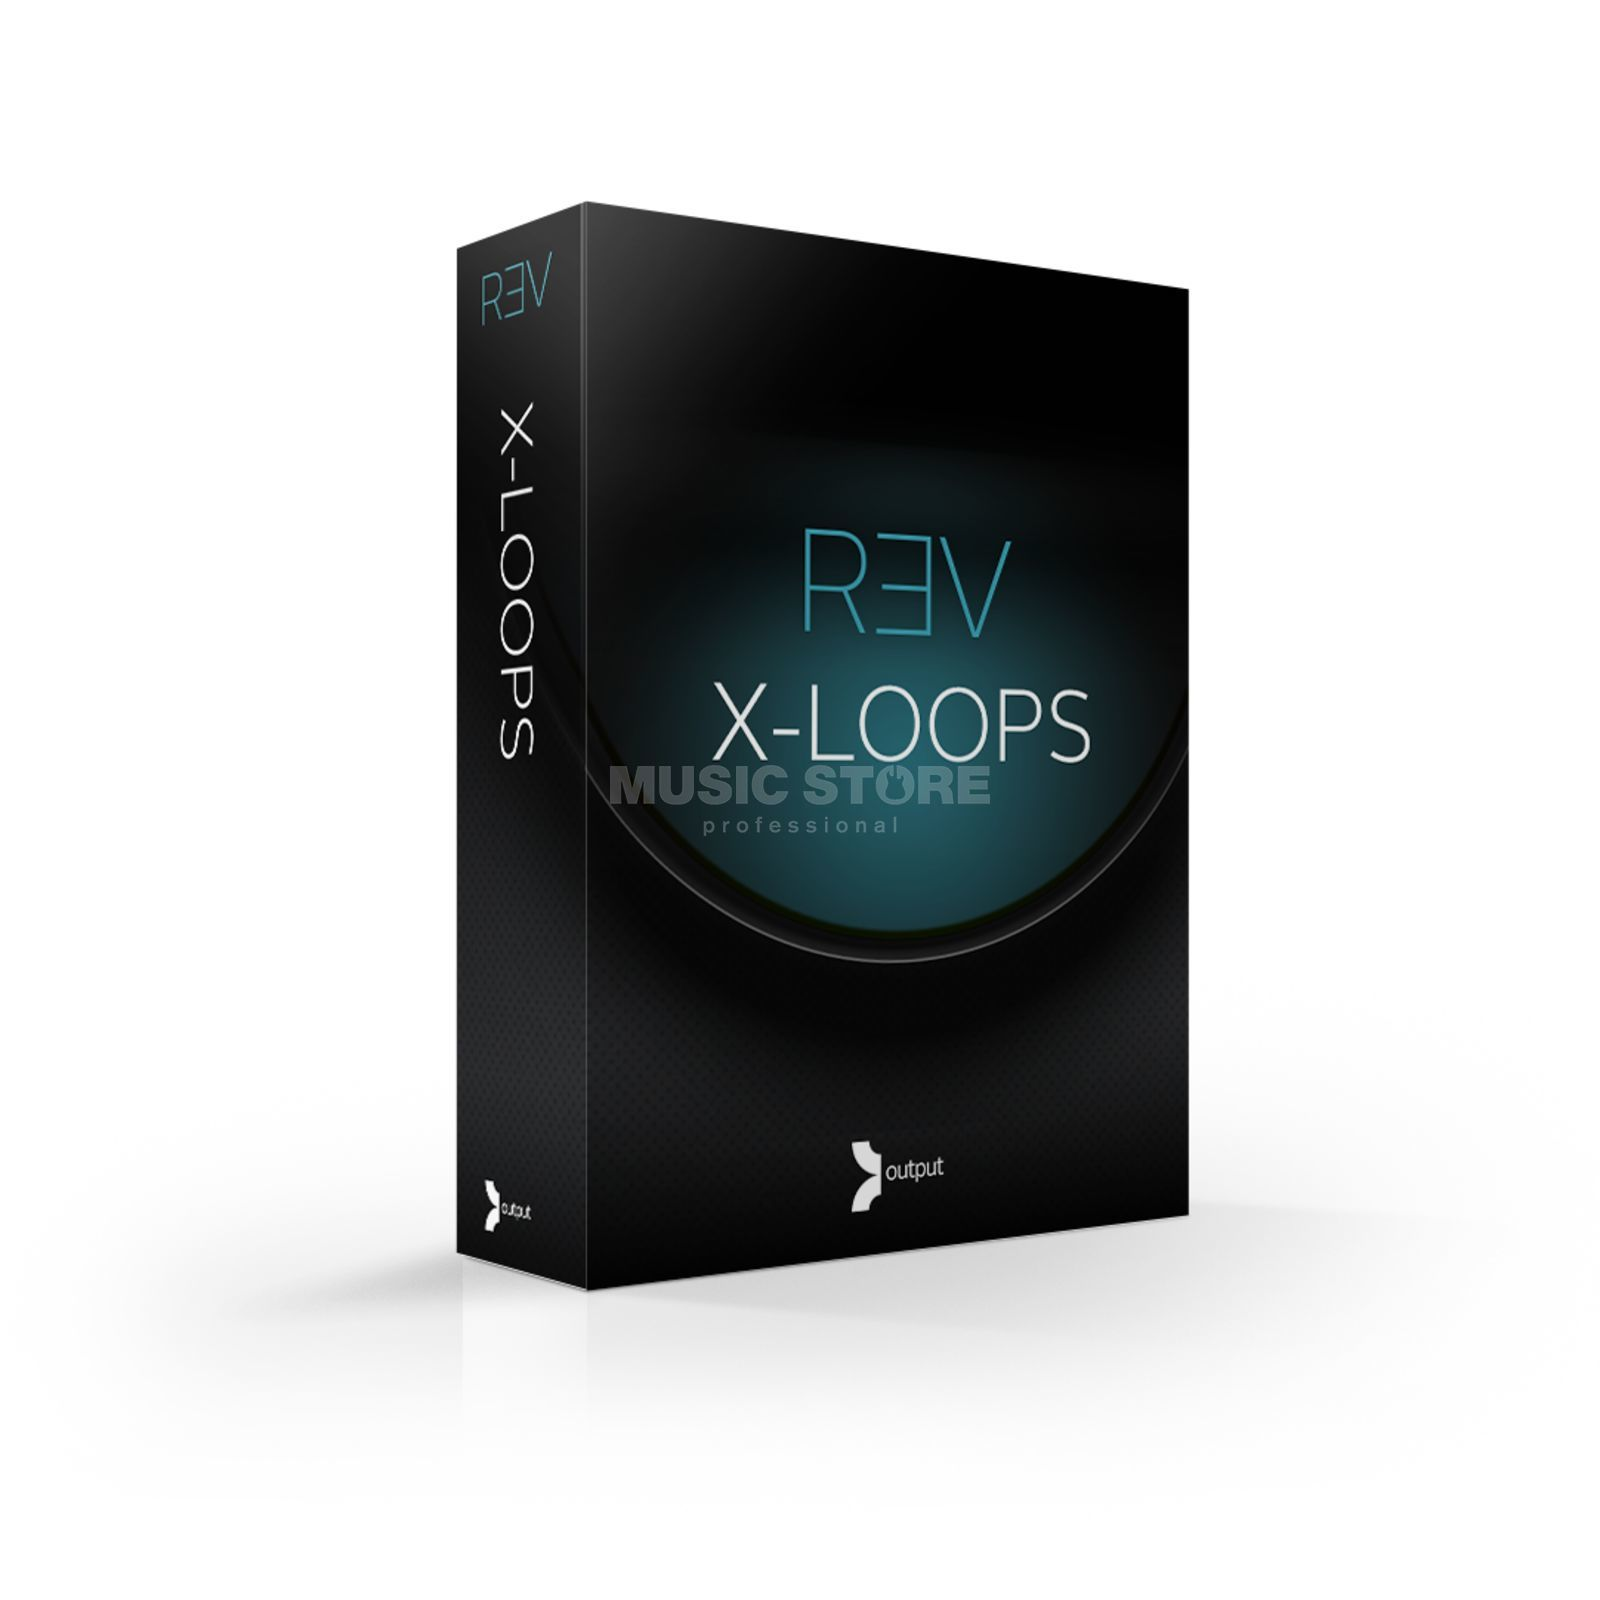 output REV X-LOOPS CG (CODE) Crossgrade REV user Produktbild